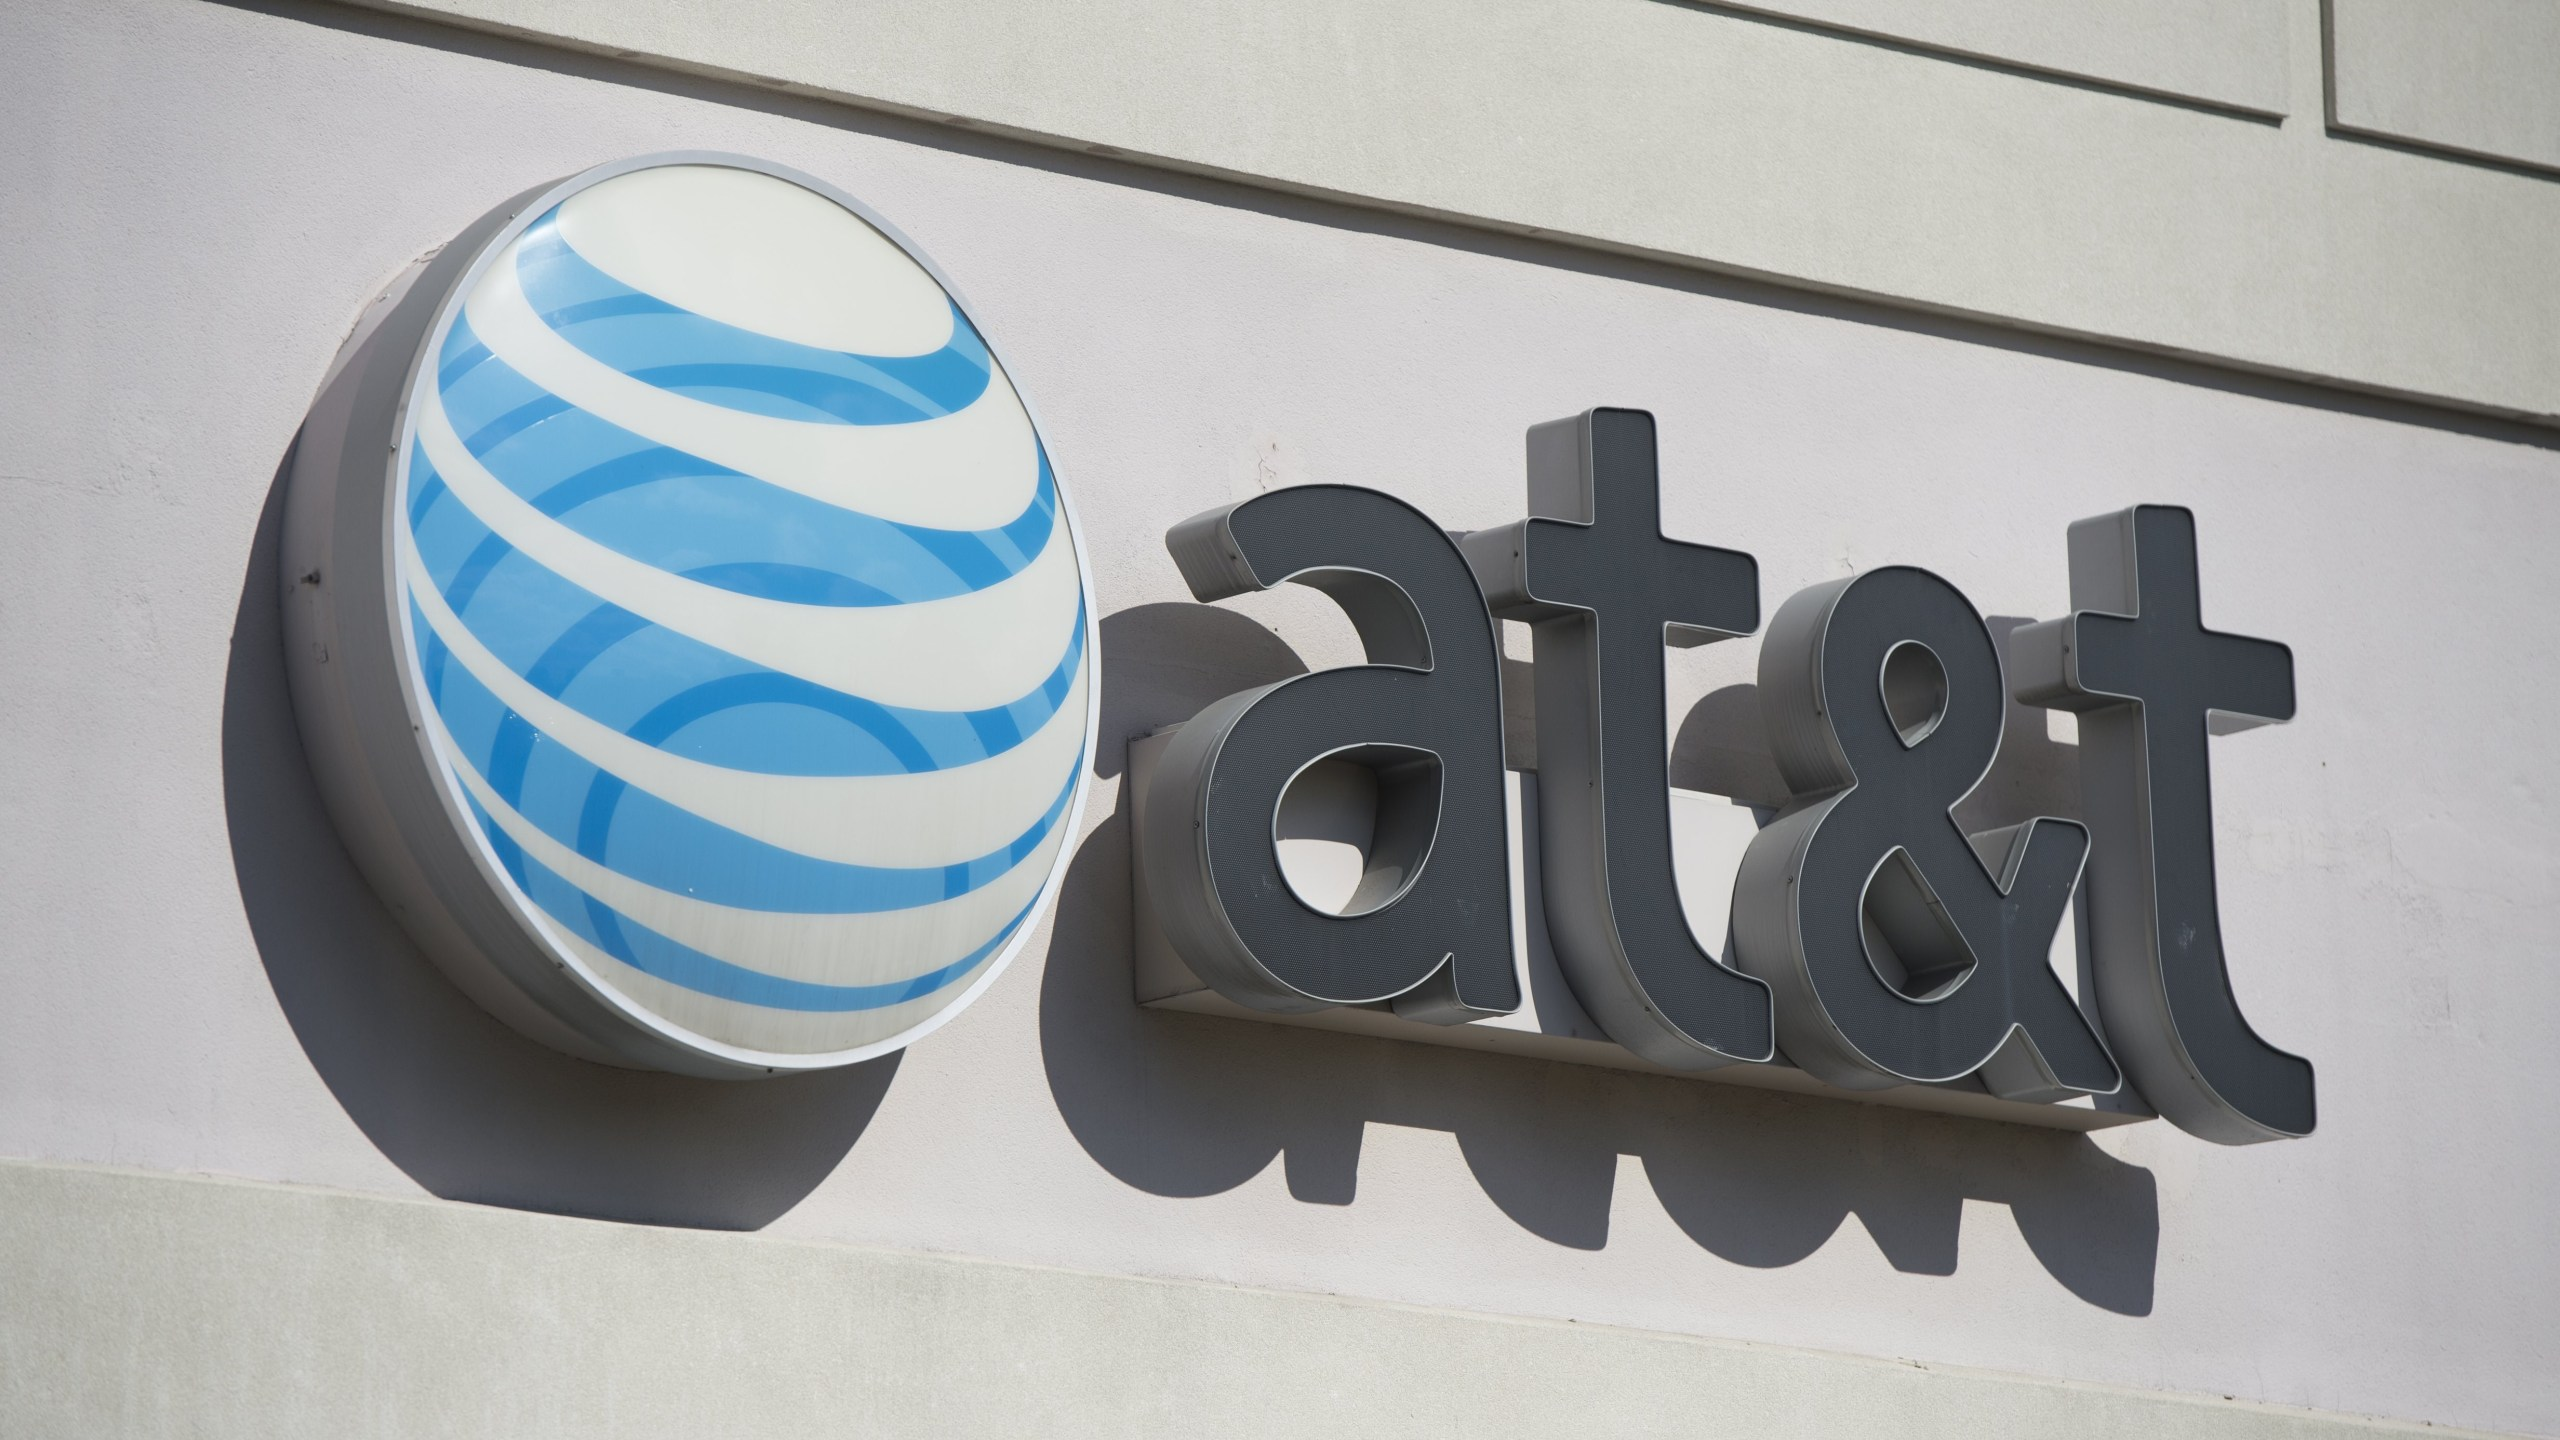 An AT&T store is seen in Springfield, Virginia, on Oct. 23, 2014. (Credit: SAUL LOEB/AFP via Getty Images)